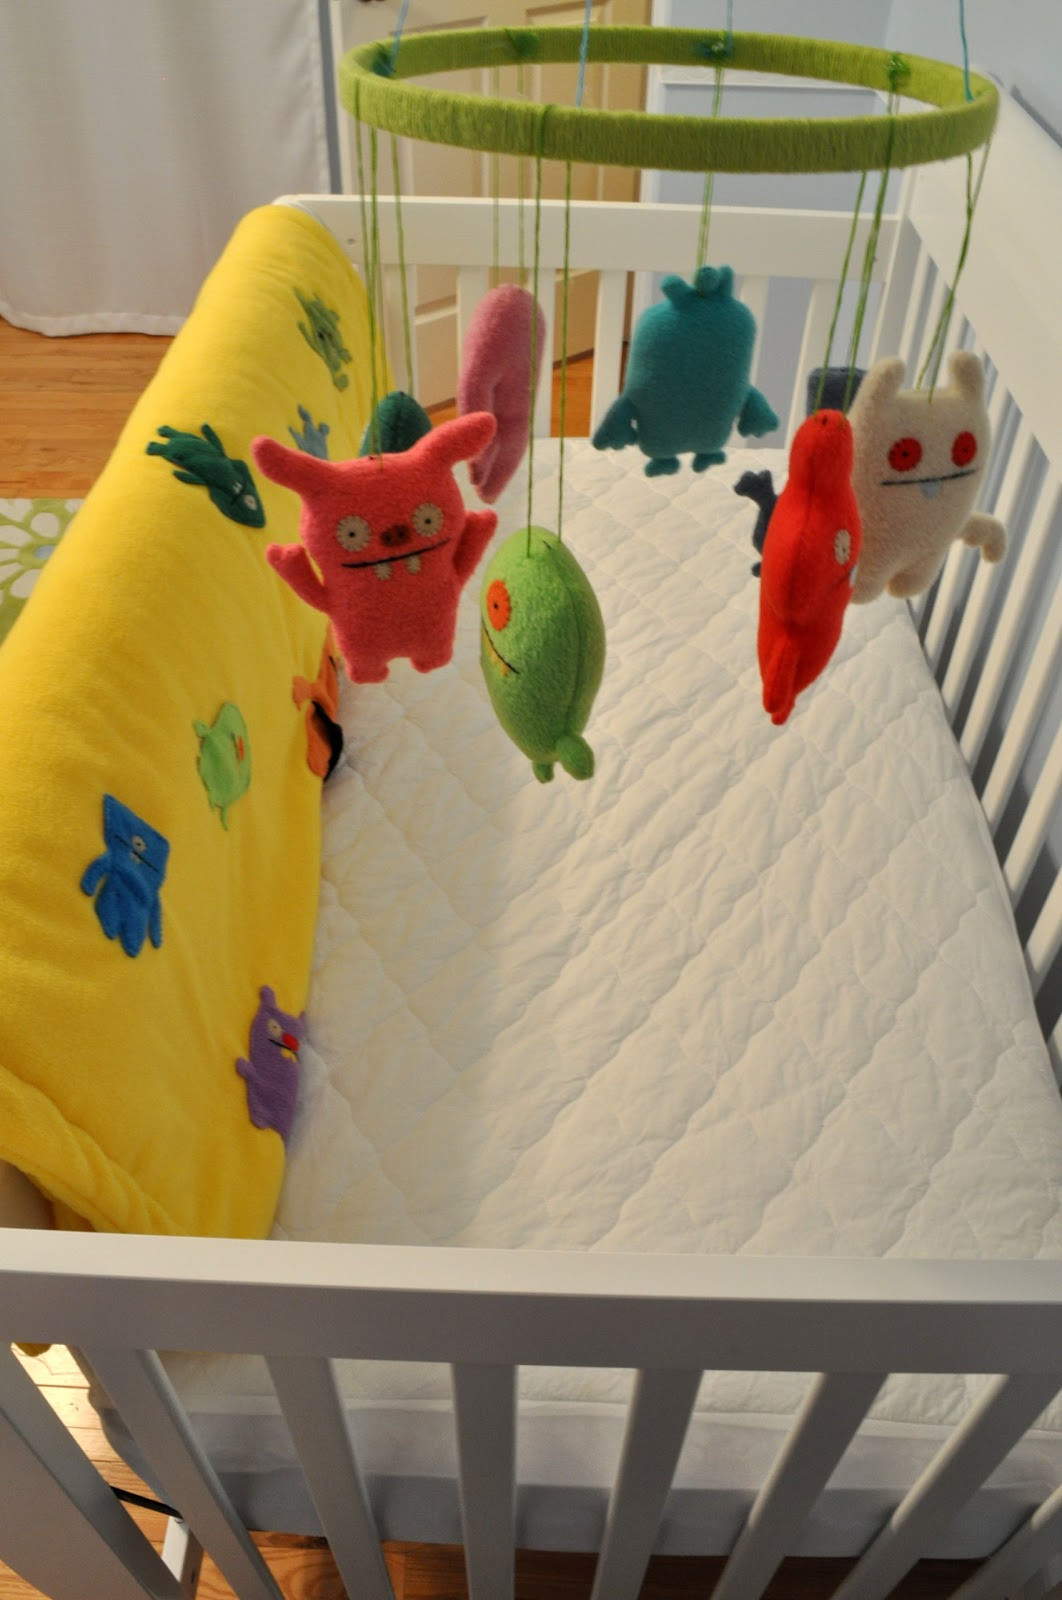 Best ideas about DIY Crib Mobiles . Save or Pin passionate fort DIY Mobile Now.